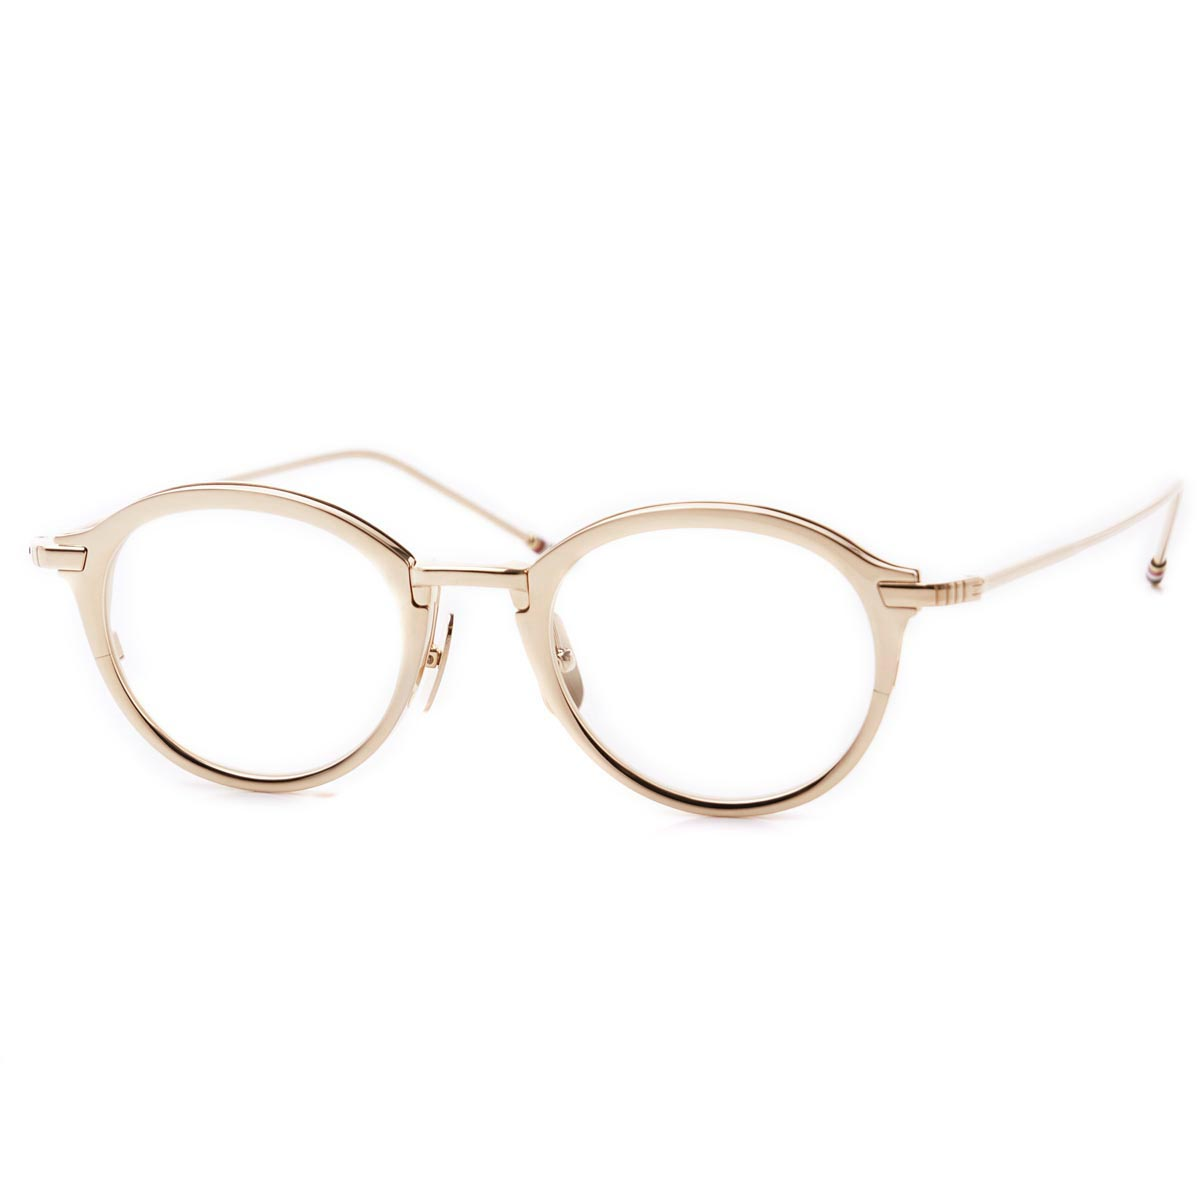 163fed081ee Glasses glasses glasses gold men design mode fashion gift present tb 110 c  gld 48 Oval